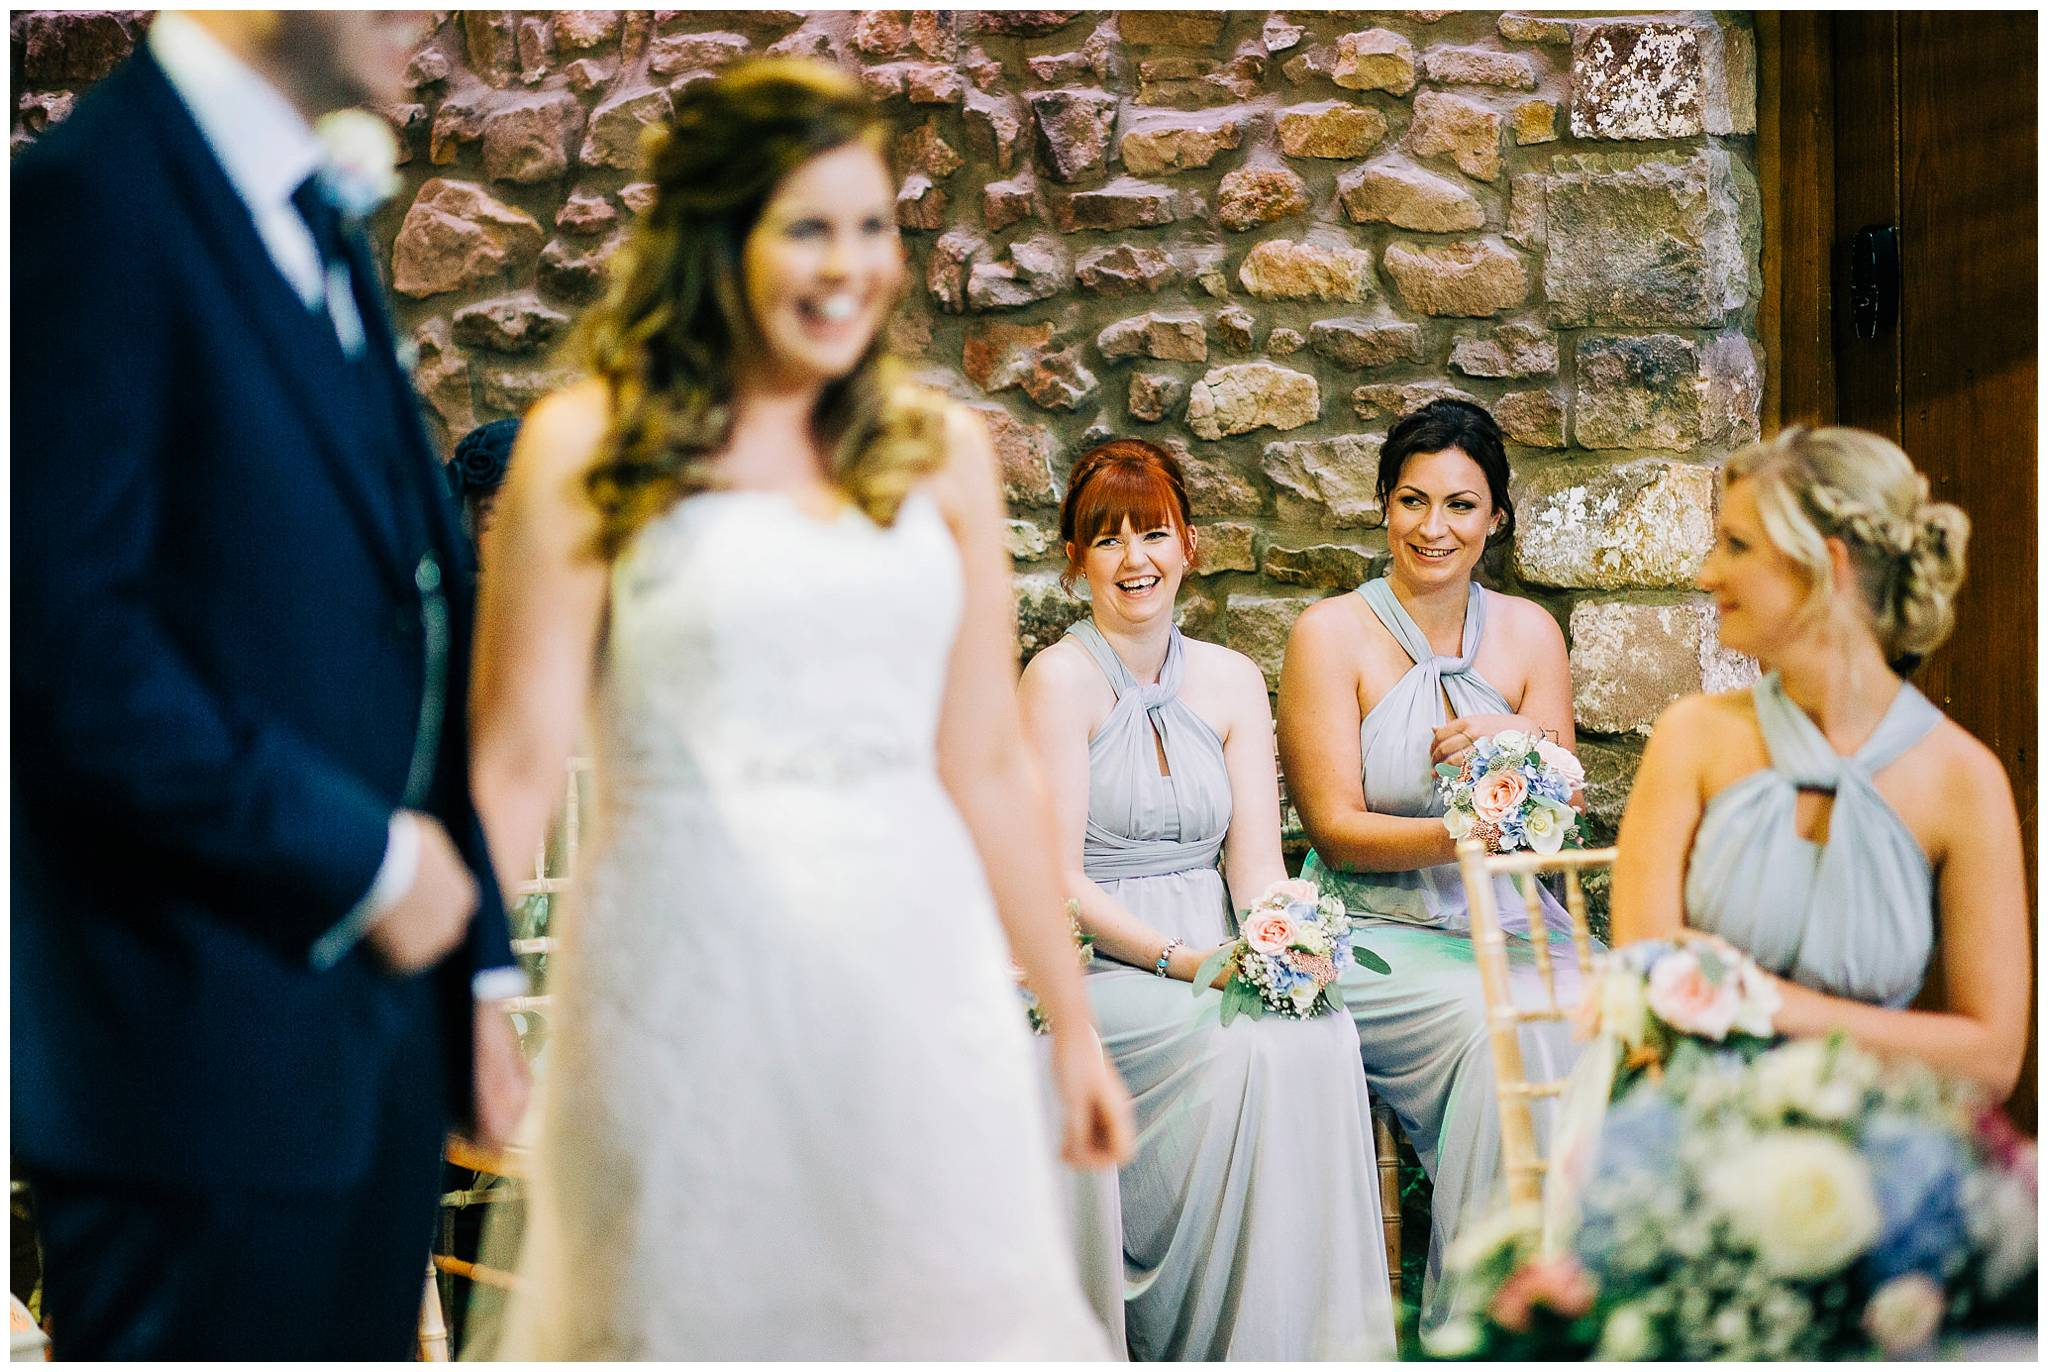 bridesmaids smiling at each other in the background during a ceremony at browsholme hall tithe barn